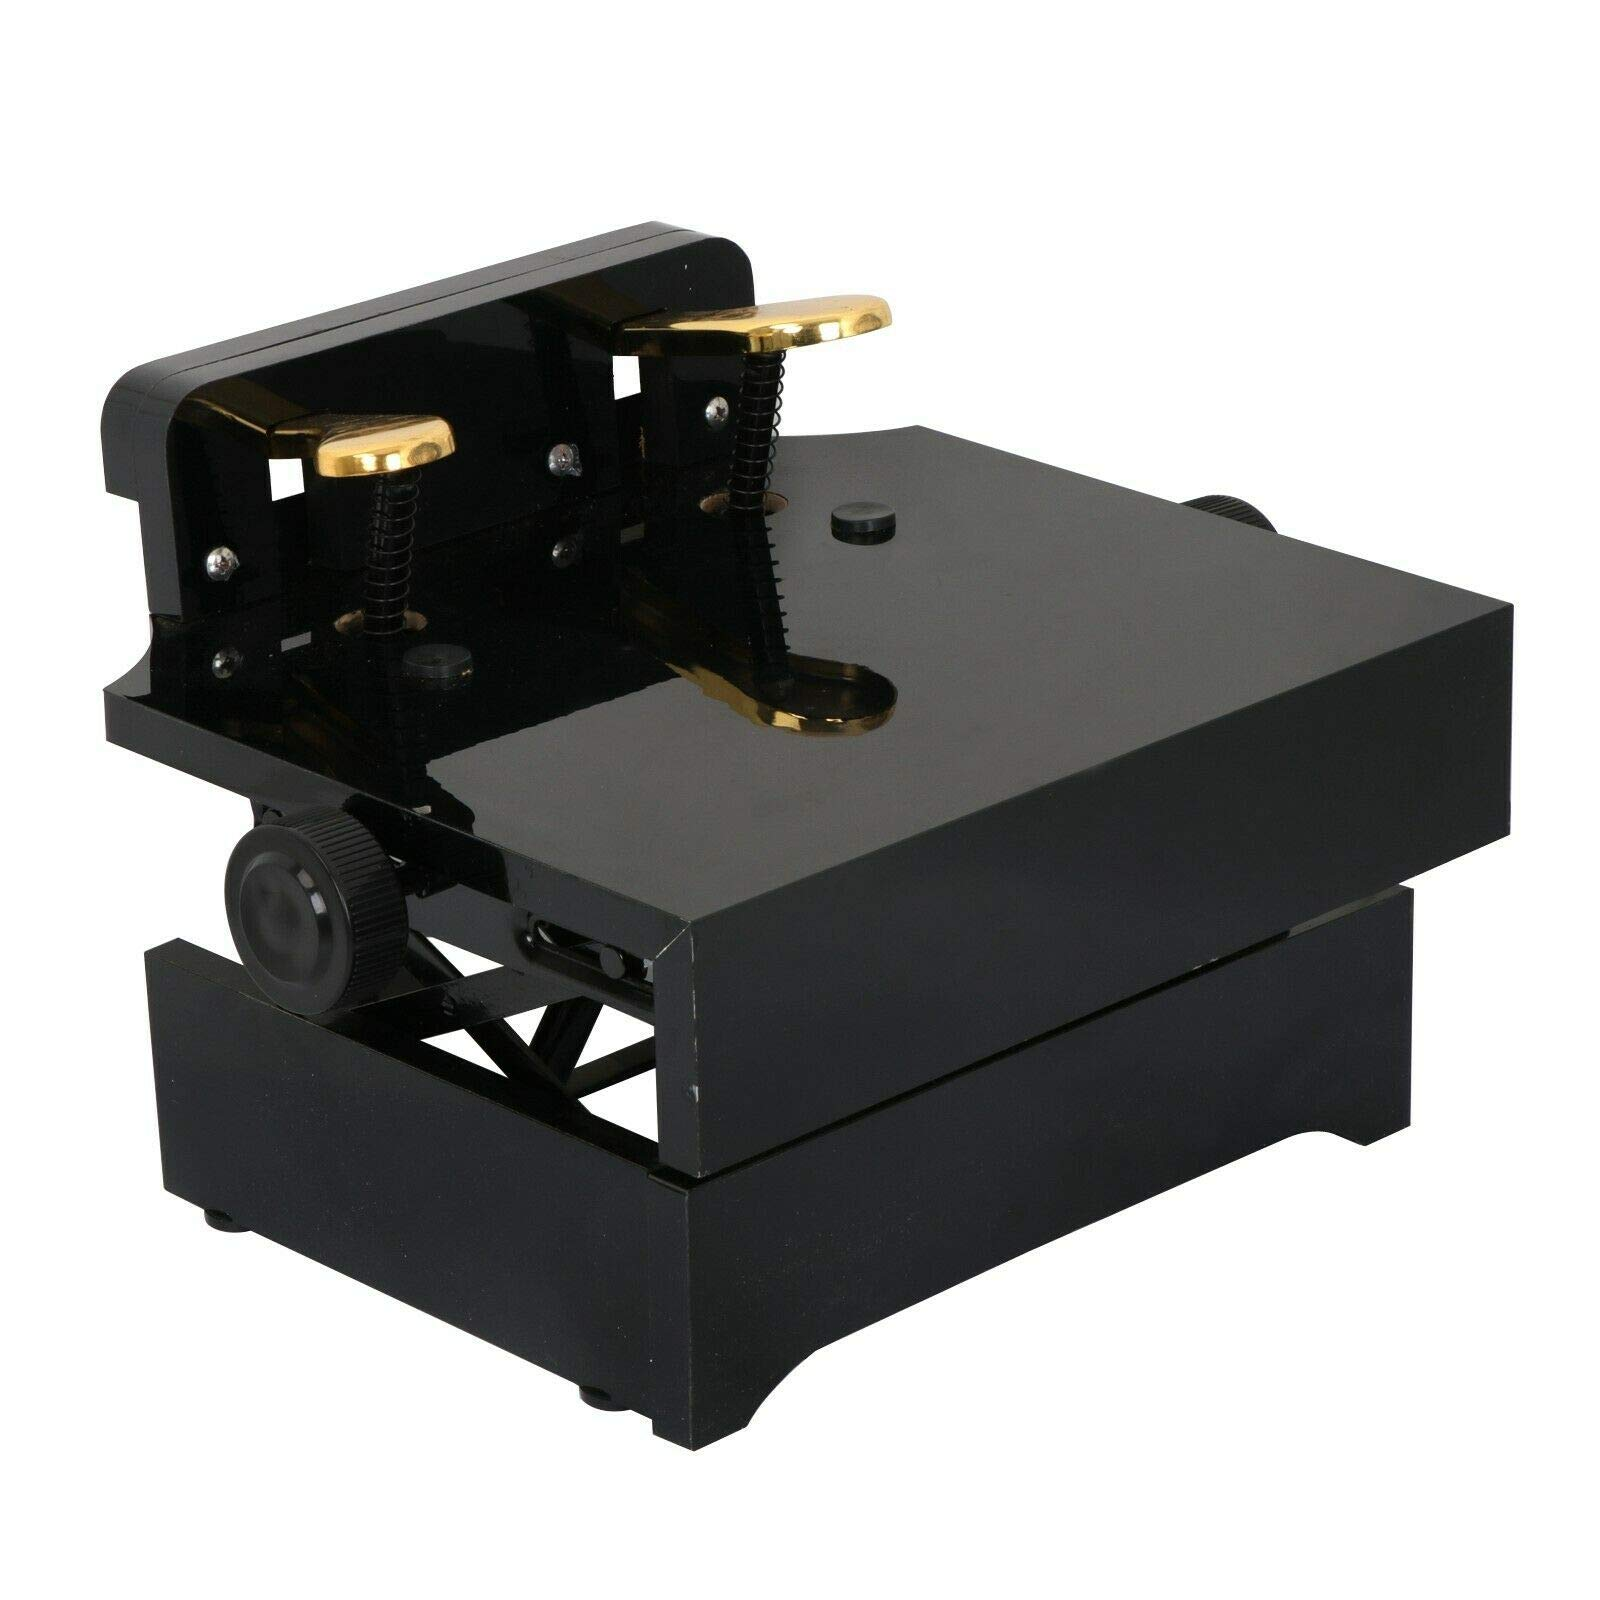 Piano Pedal Extender Dual Deluxe Extension Prop for Beginners Adjustable Height by Unknown